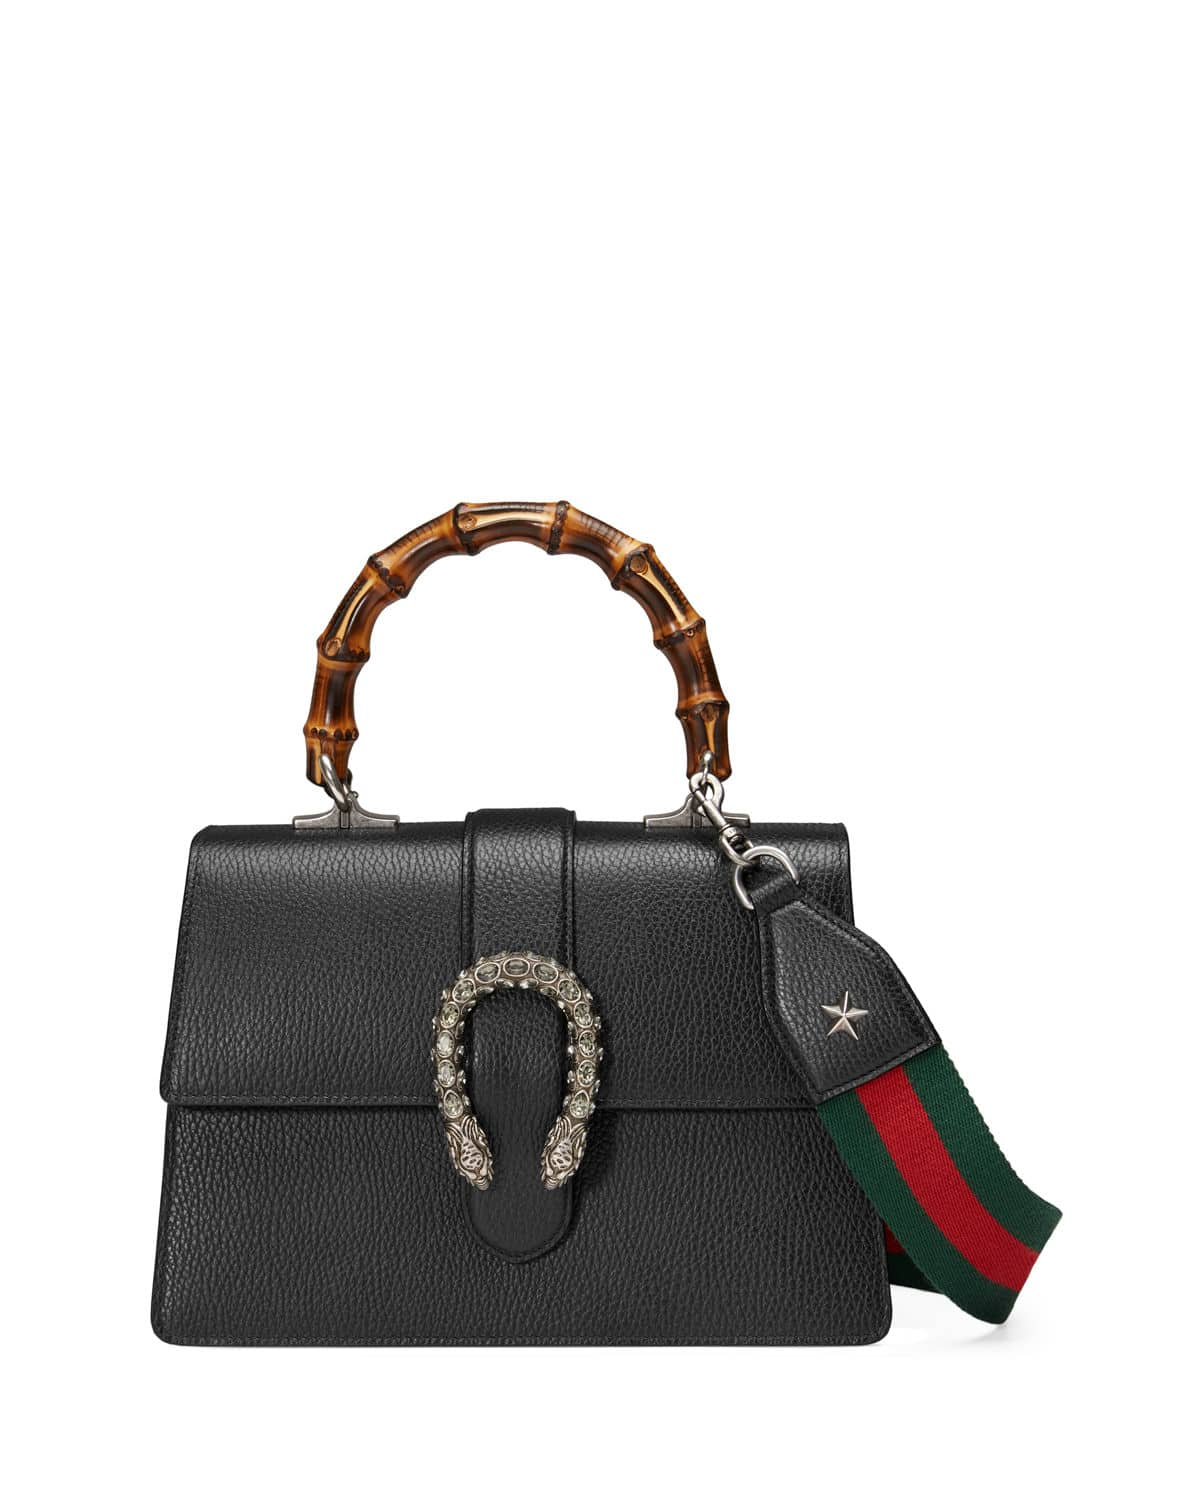 Restricted Gucci Sneakers Auction At Gucci Outlet On,line